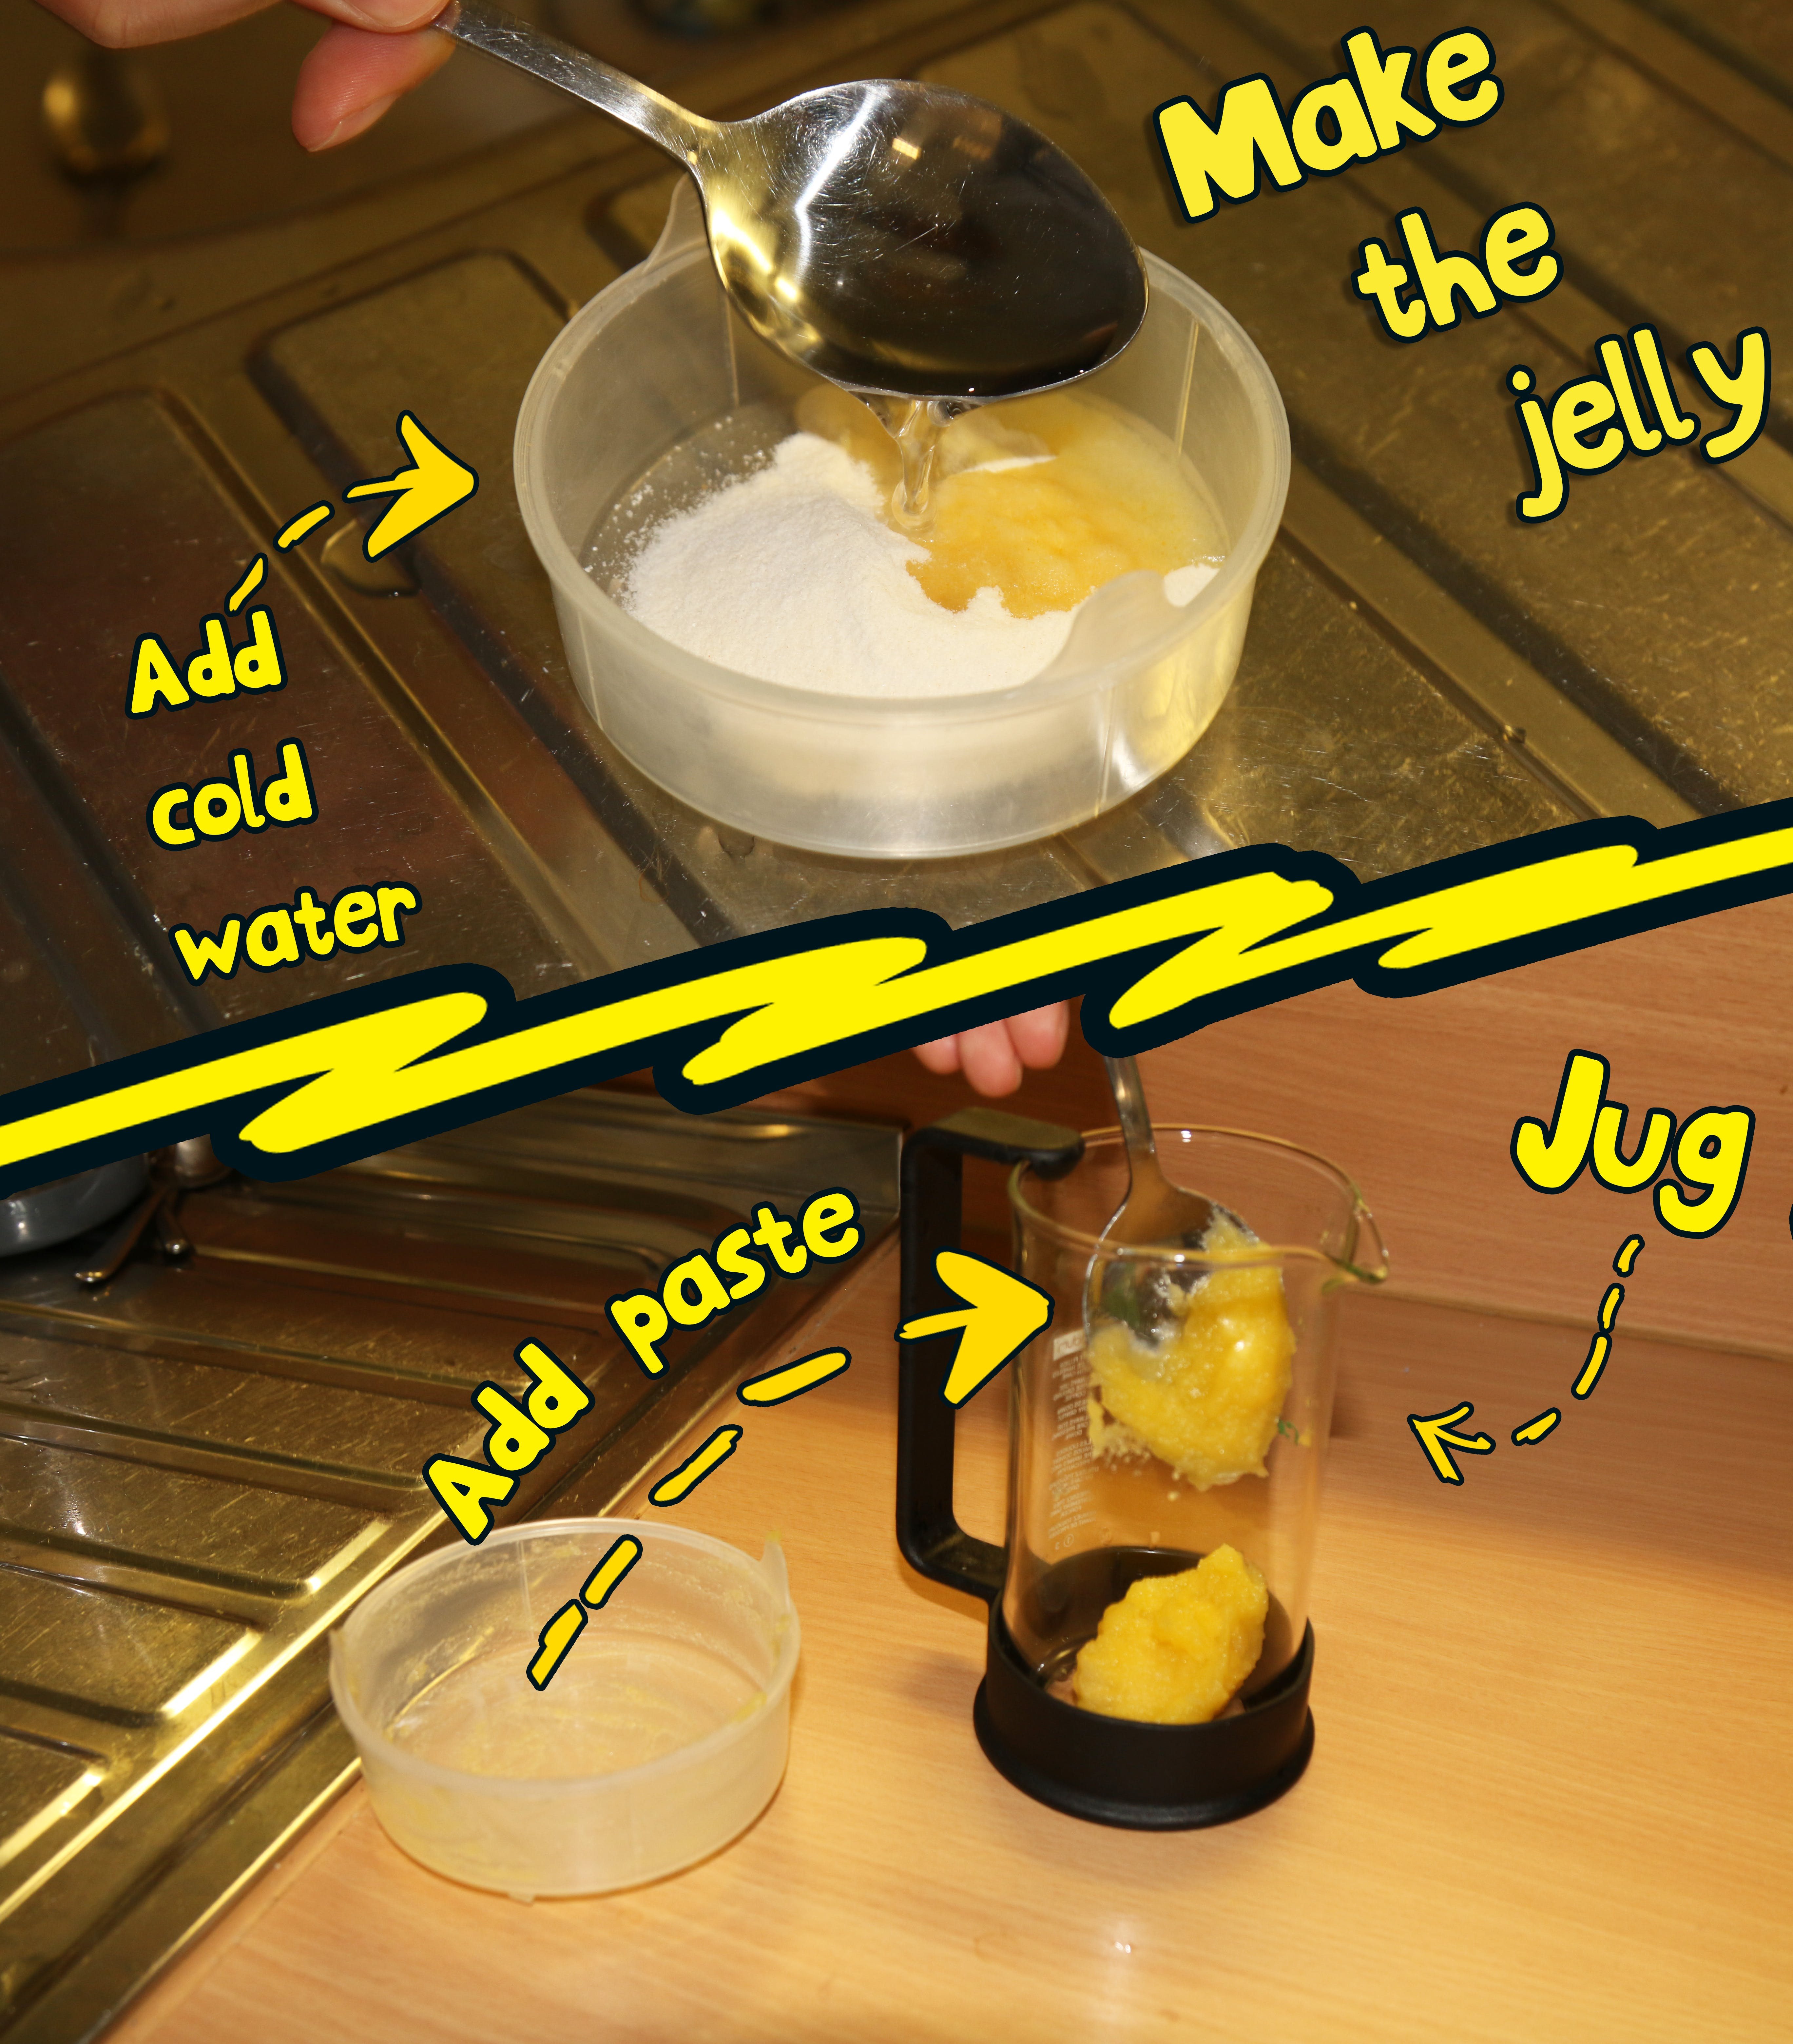 Make the jelly by adding a little cold water to the powder.